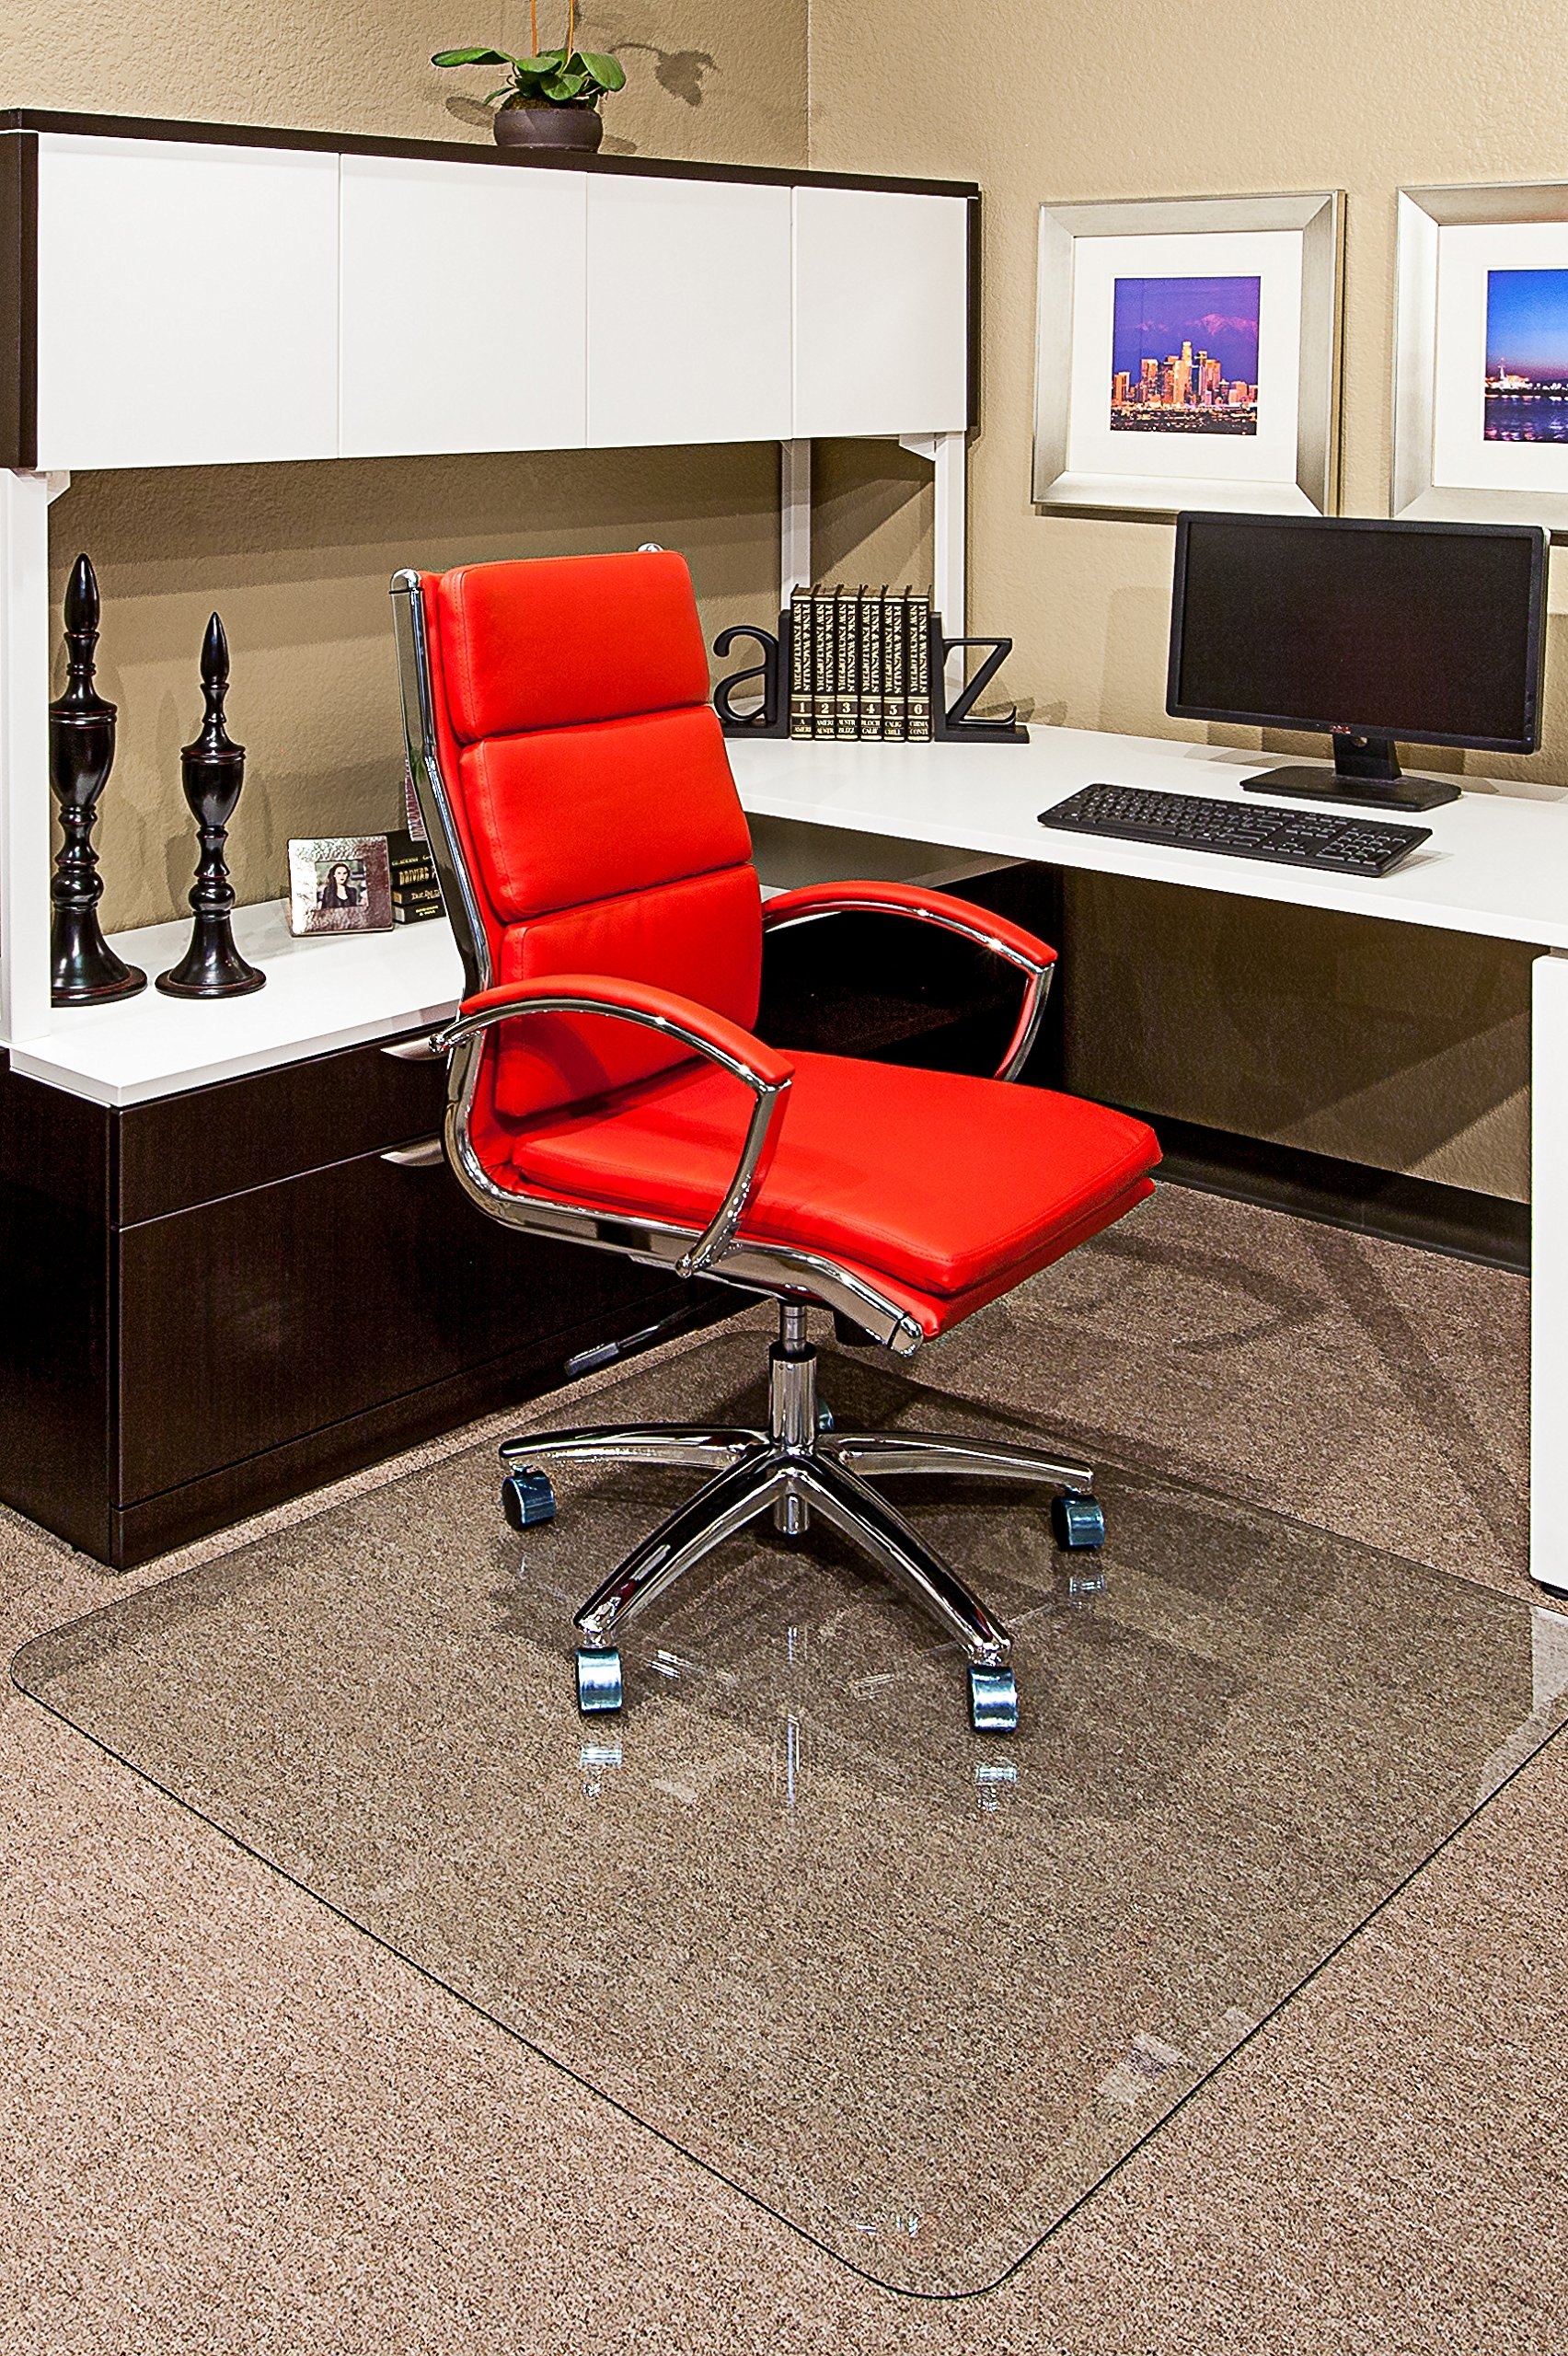 40'' x 60'' Clearly Innovative Lifetime Glass Chairmat with Patented Beveled Edges